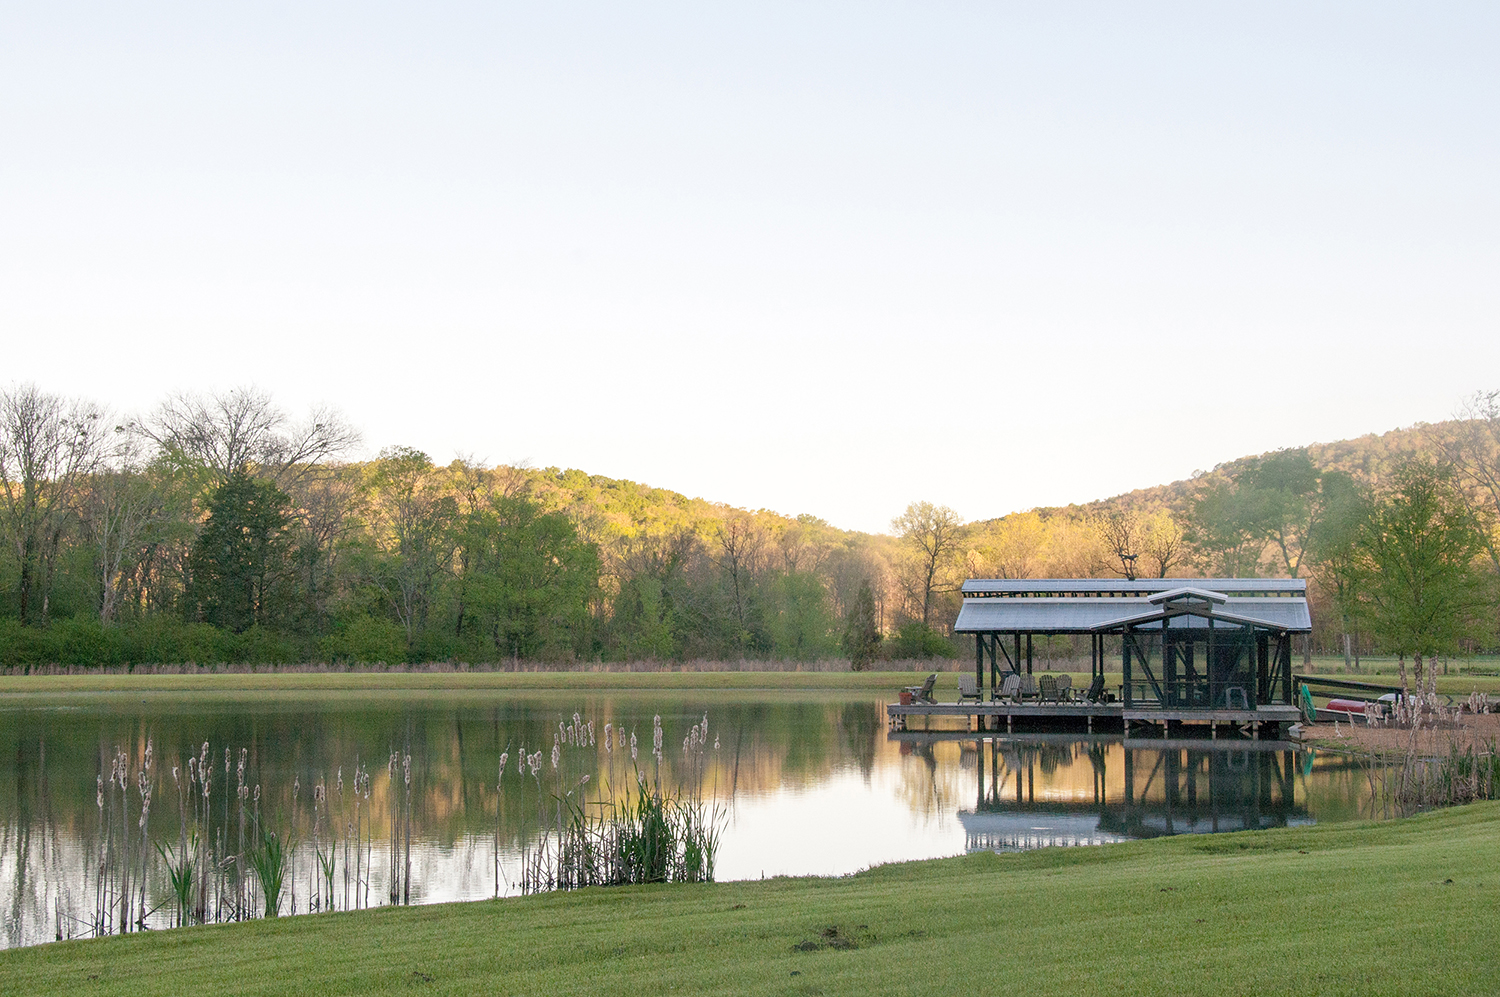 sugar_creek_farm_boathouse_02_pond_lake_boat_house_dock_screened_porch_1500.jpg